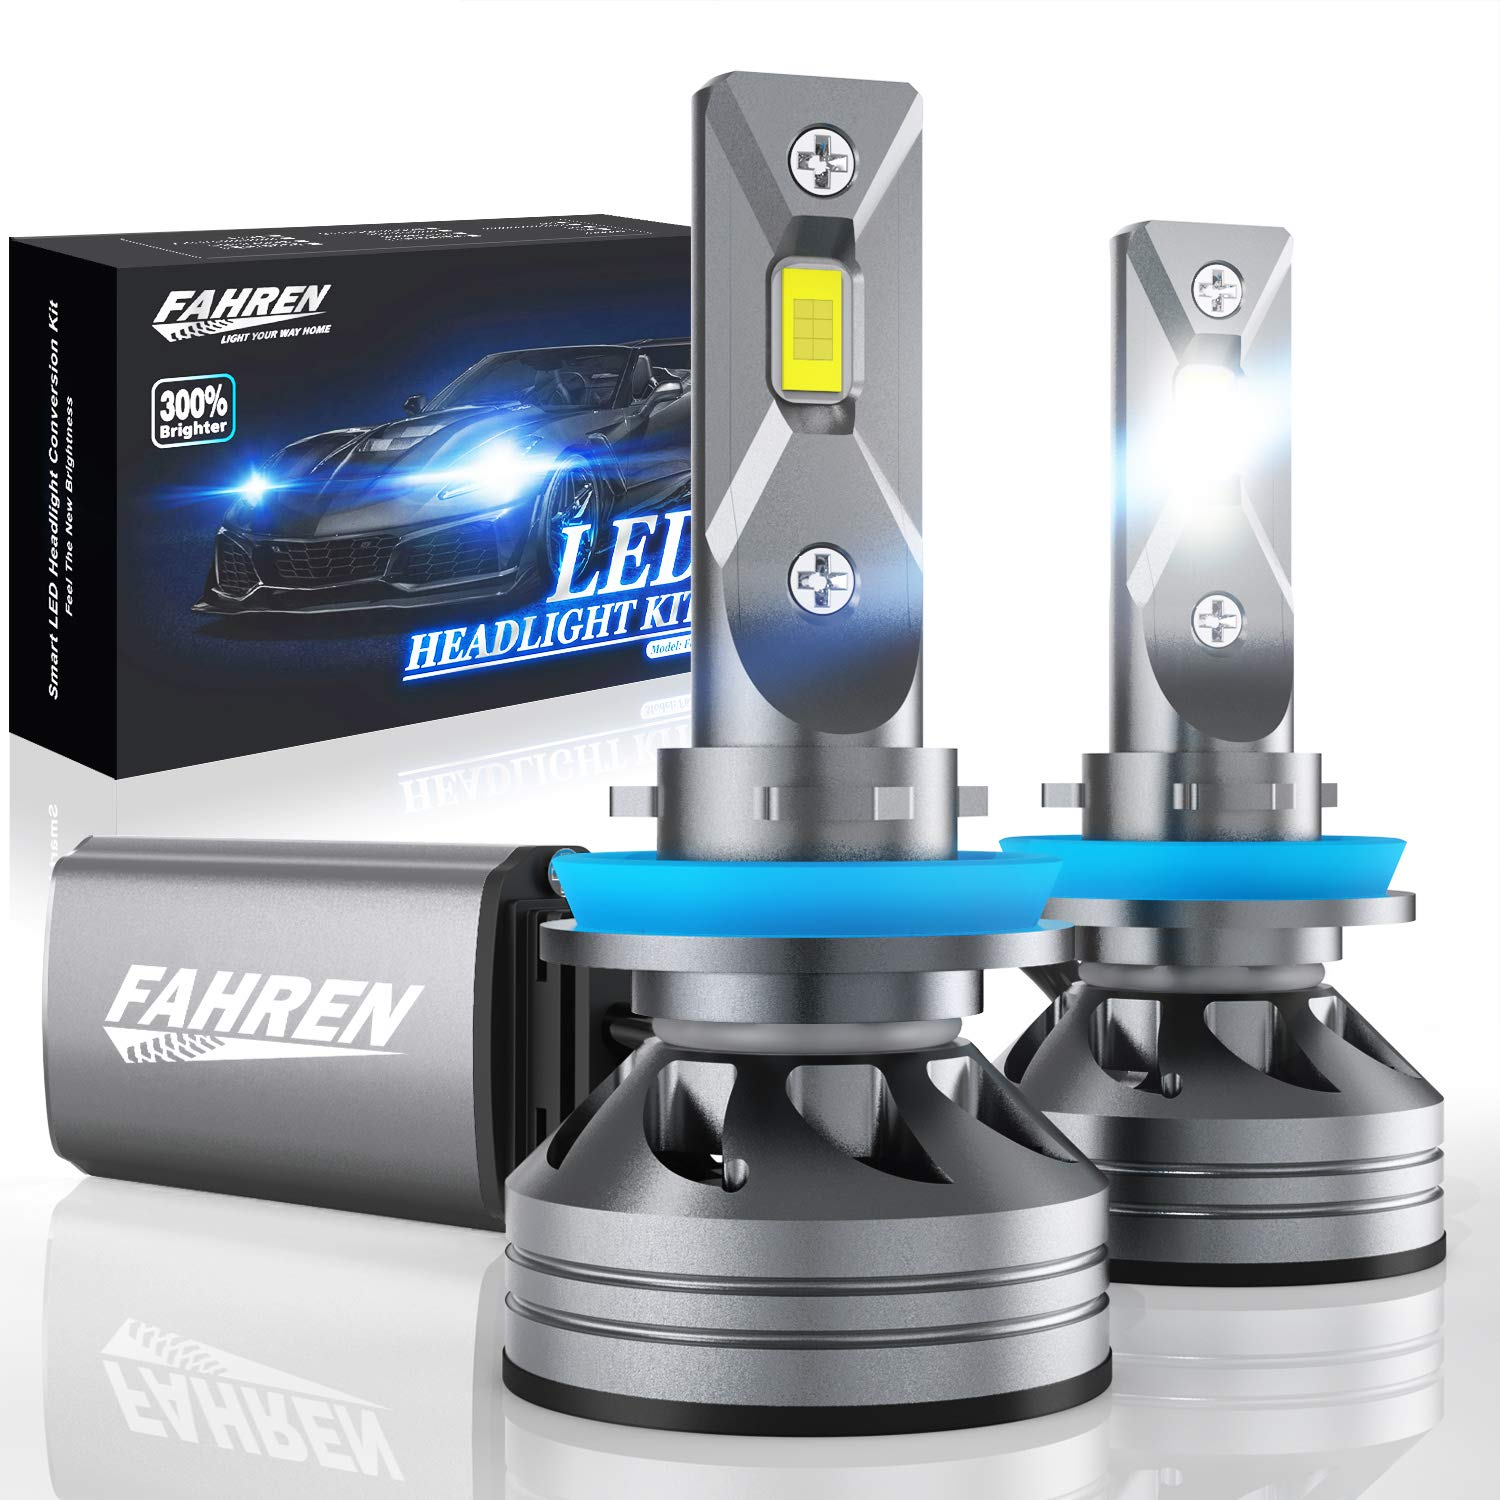 Fahren Super Bright LED